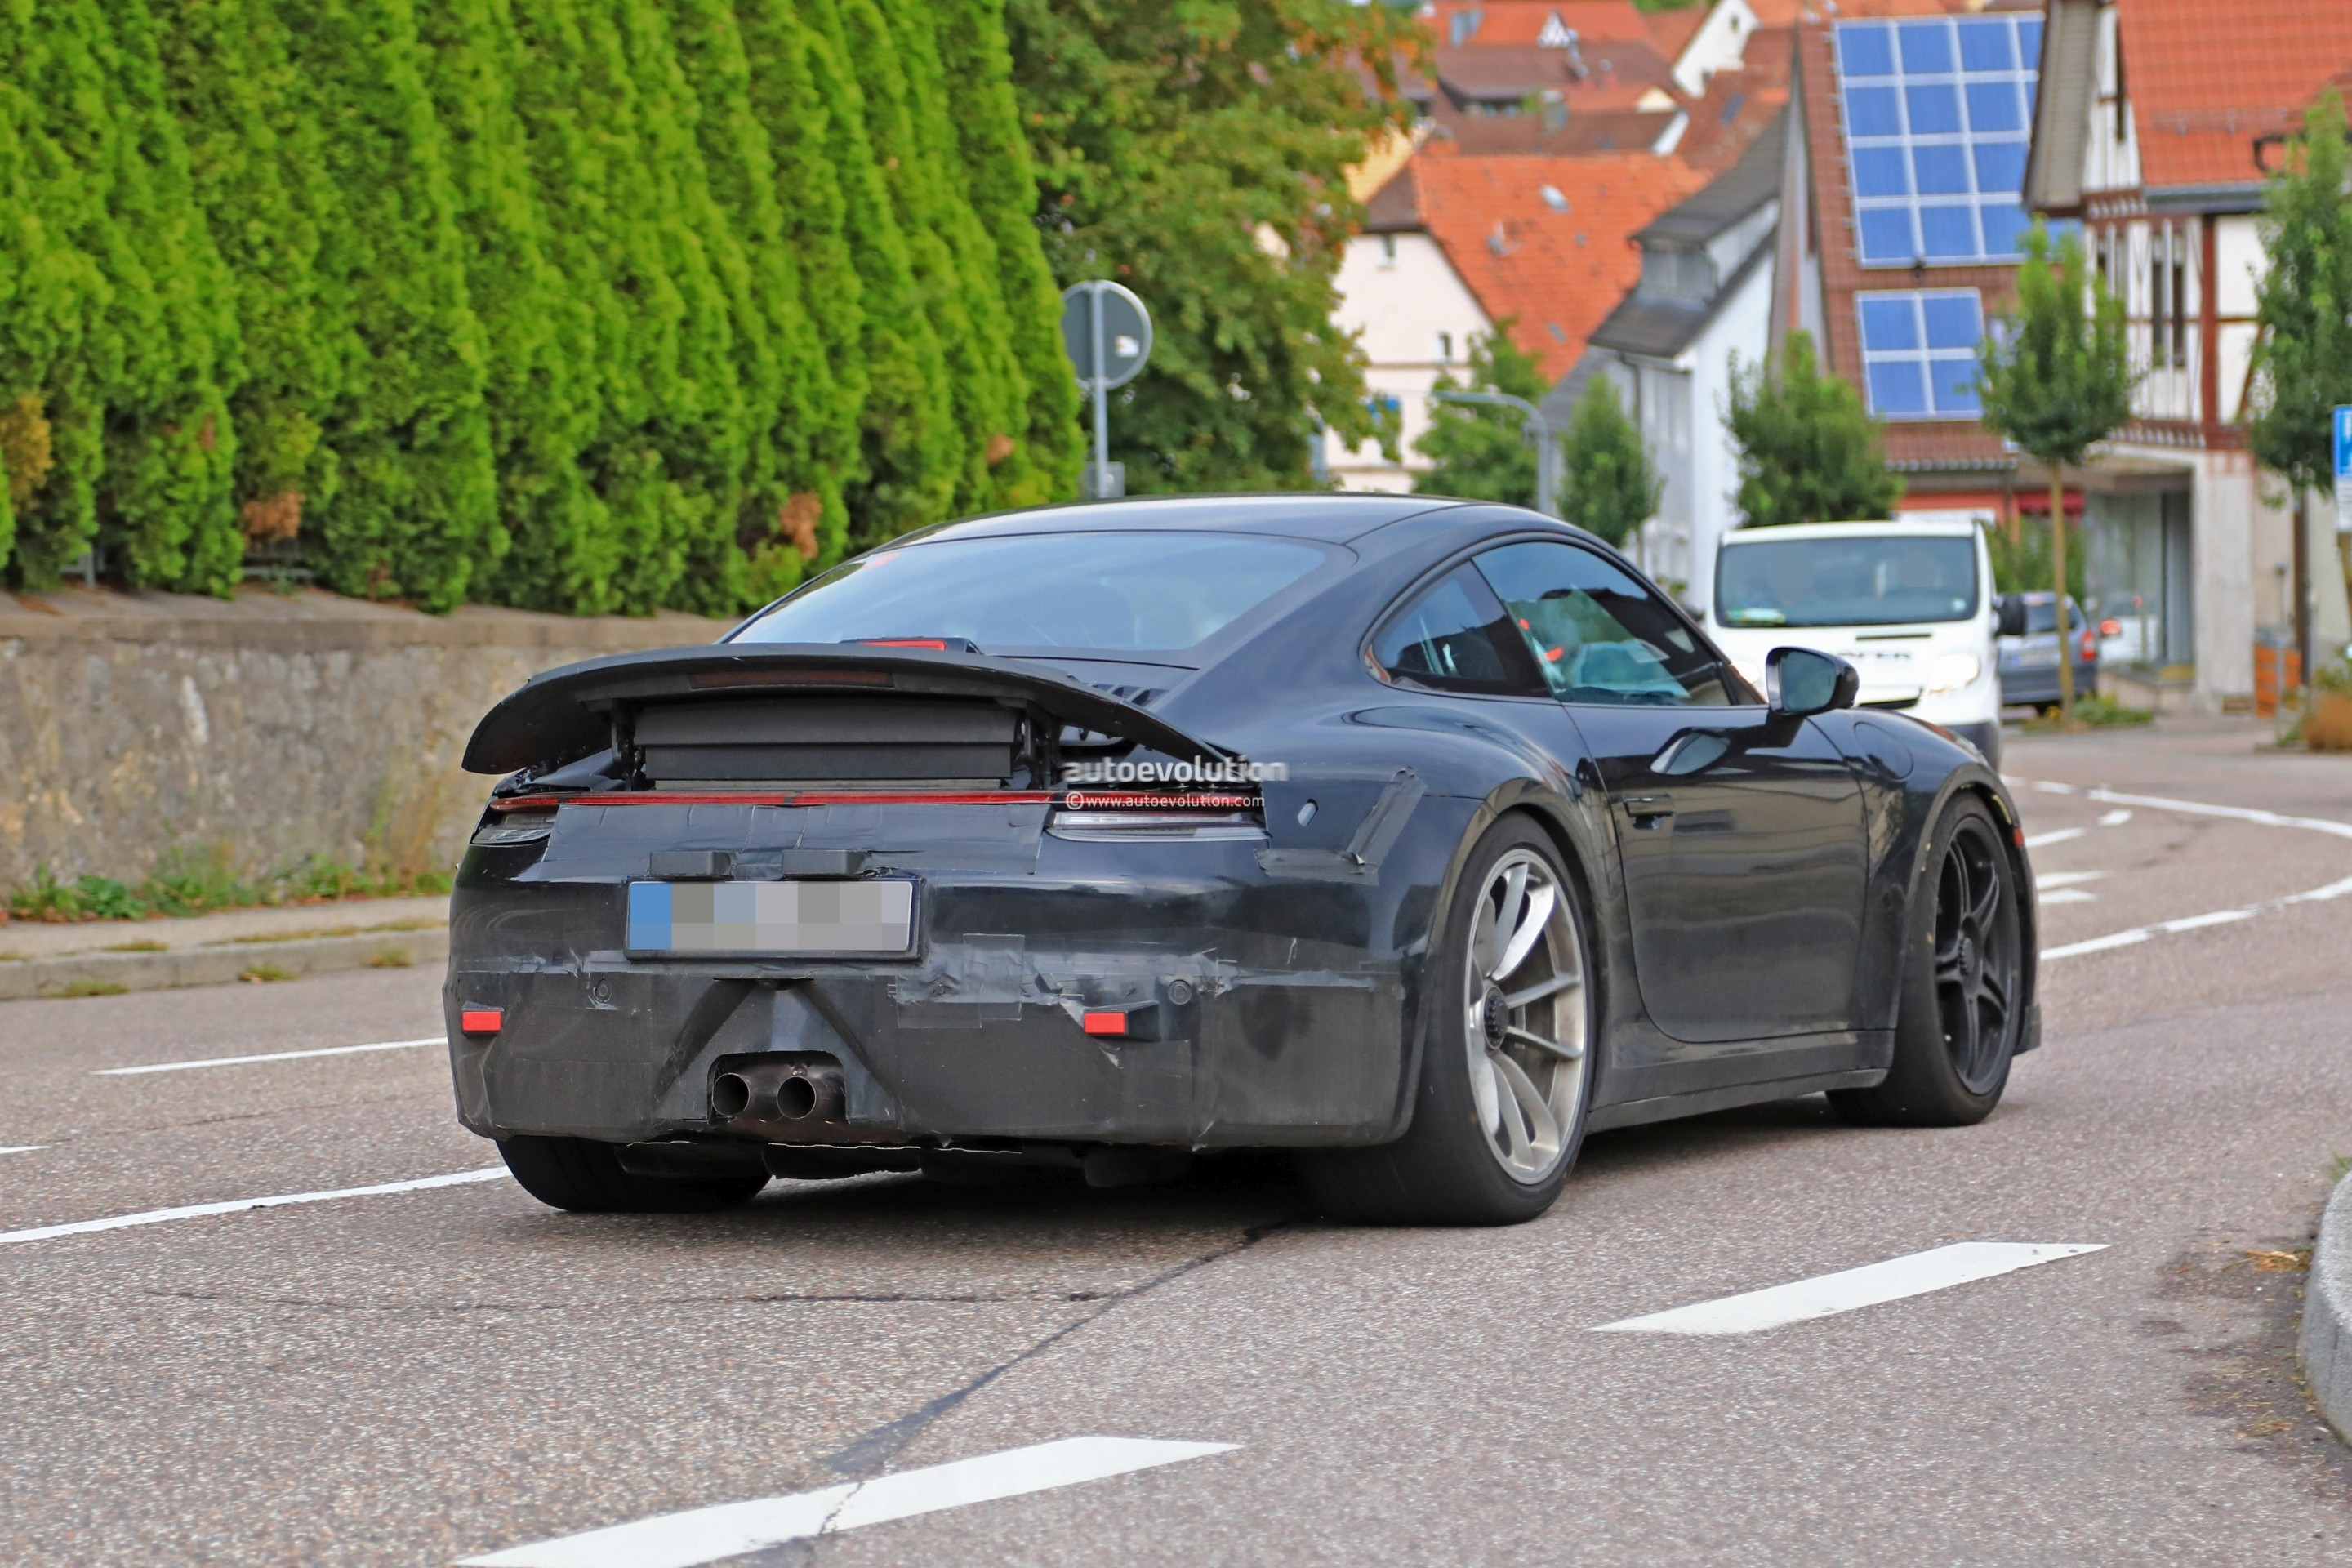 2020 Porsche 911 Gt3 Shows Up In Traffic Naturally